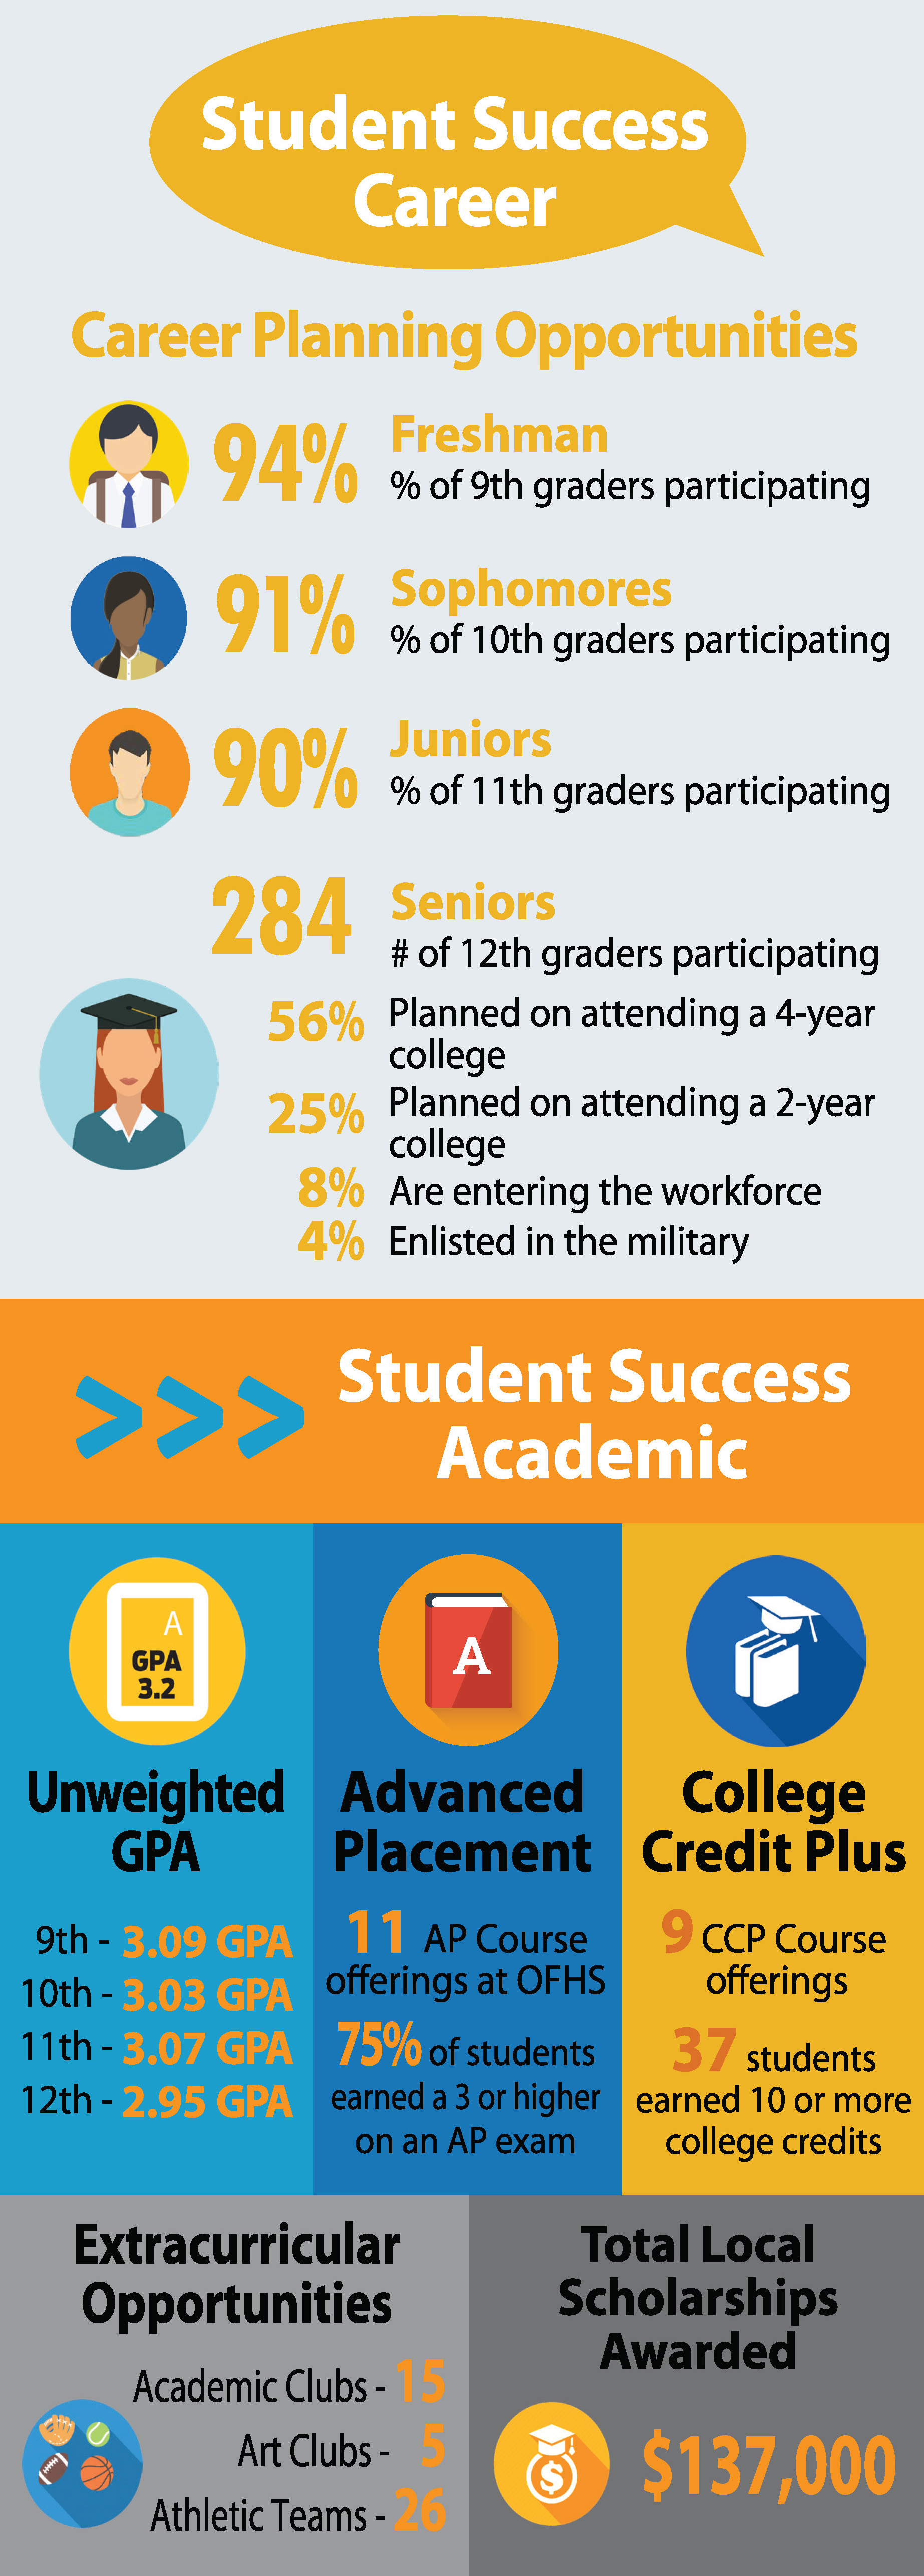 OFHS LOCAL SCORECARD - STUDENT SUCCESS